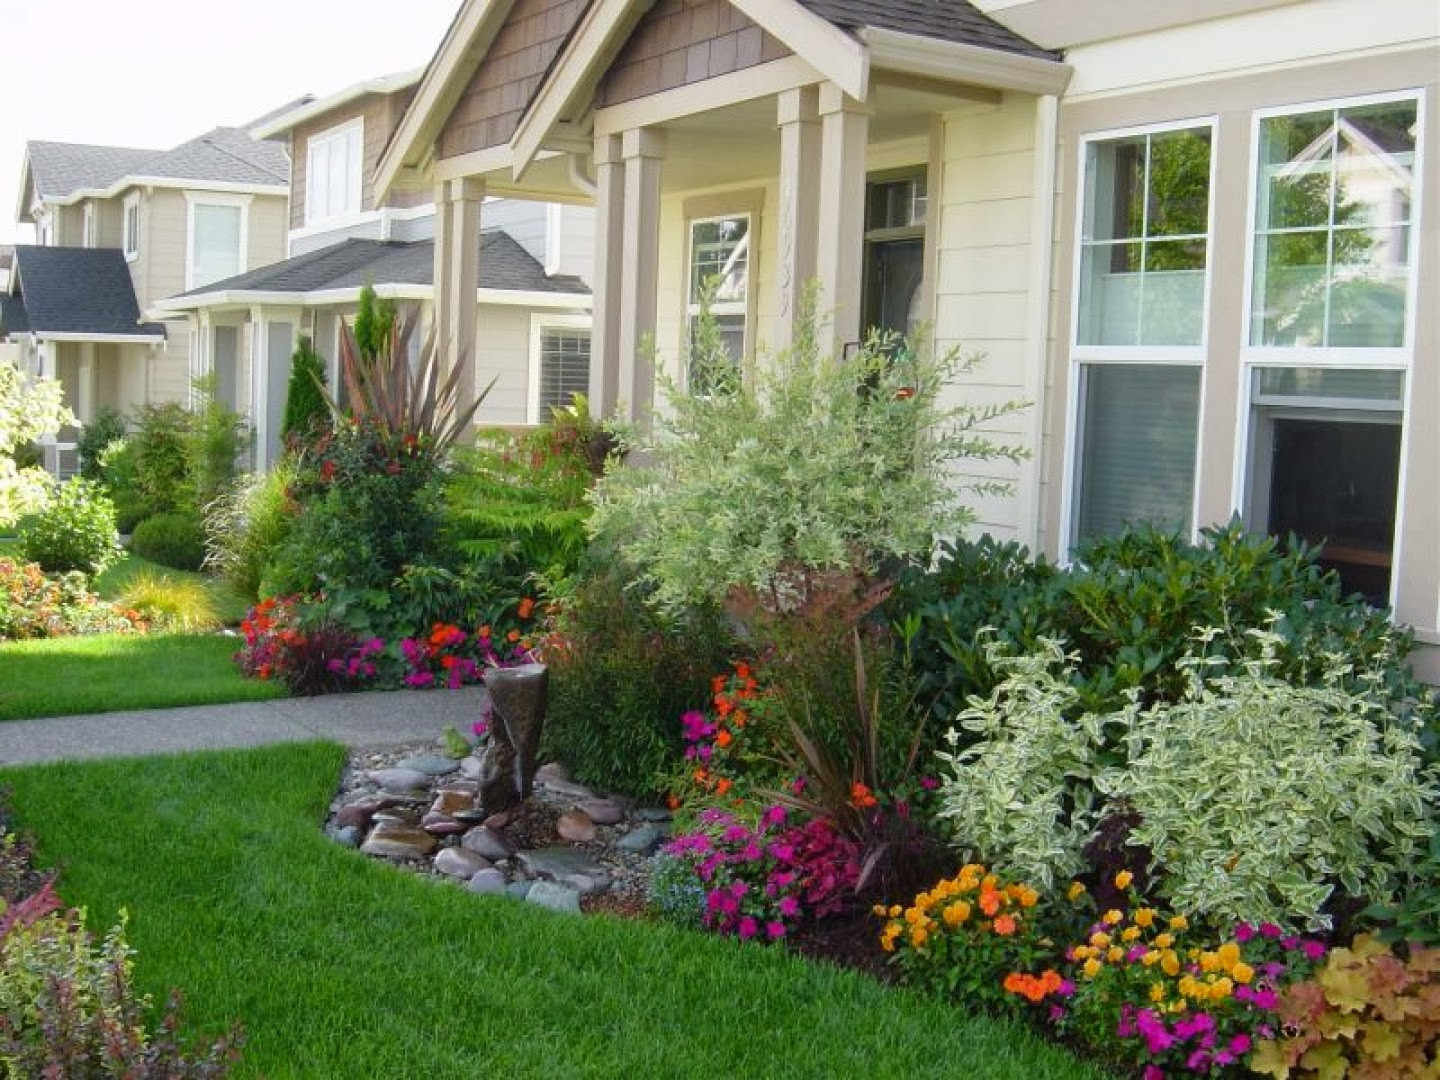 Landscape Ideas for Front Yard Inspirational Gardening and Landscaping Front Yard Landscaping